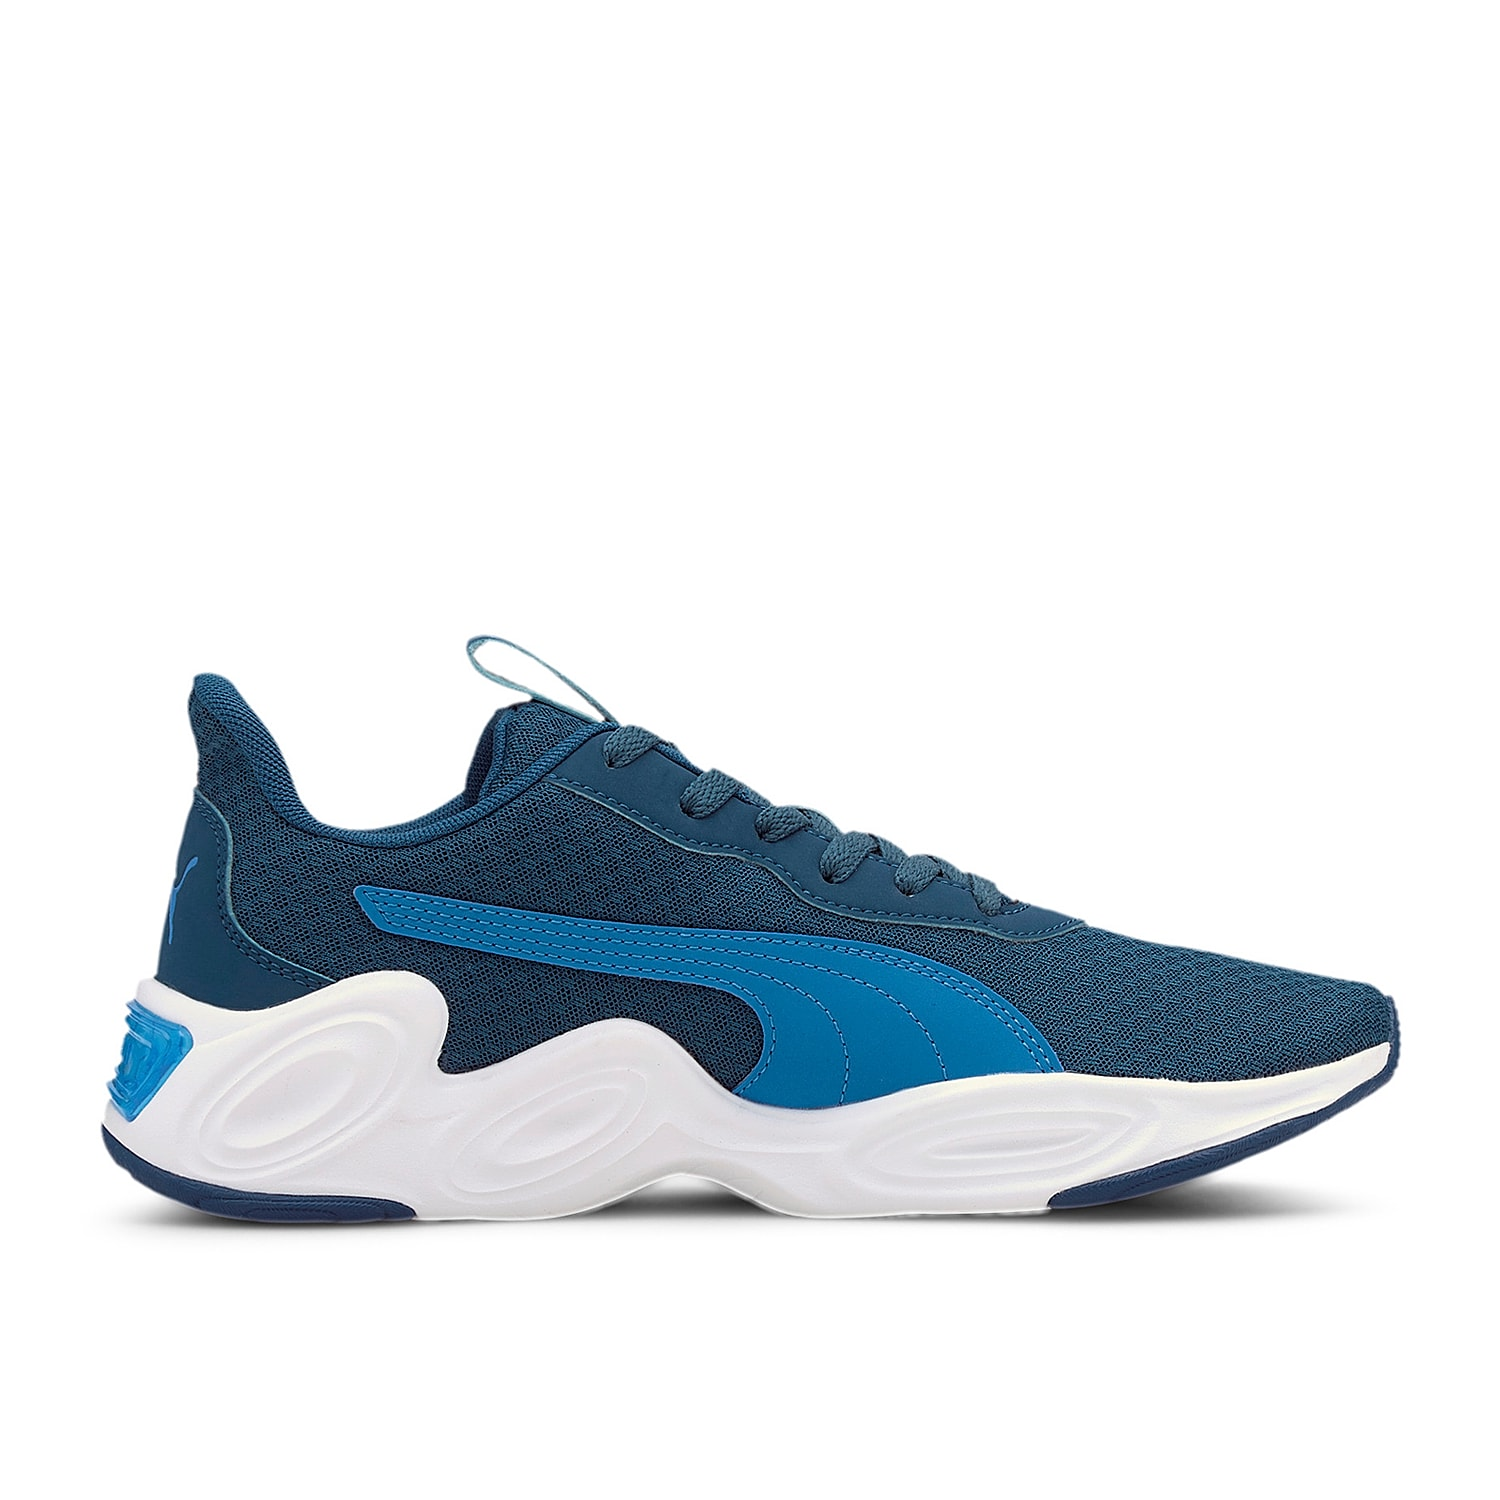 Freshen up casual looks with the men\\\'s Cell Magma Clean sneaker from Puma. A thick foam midsole and SoftFoam+ footbed will keep you comfortable during any activity.